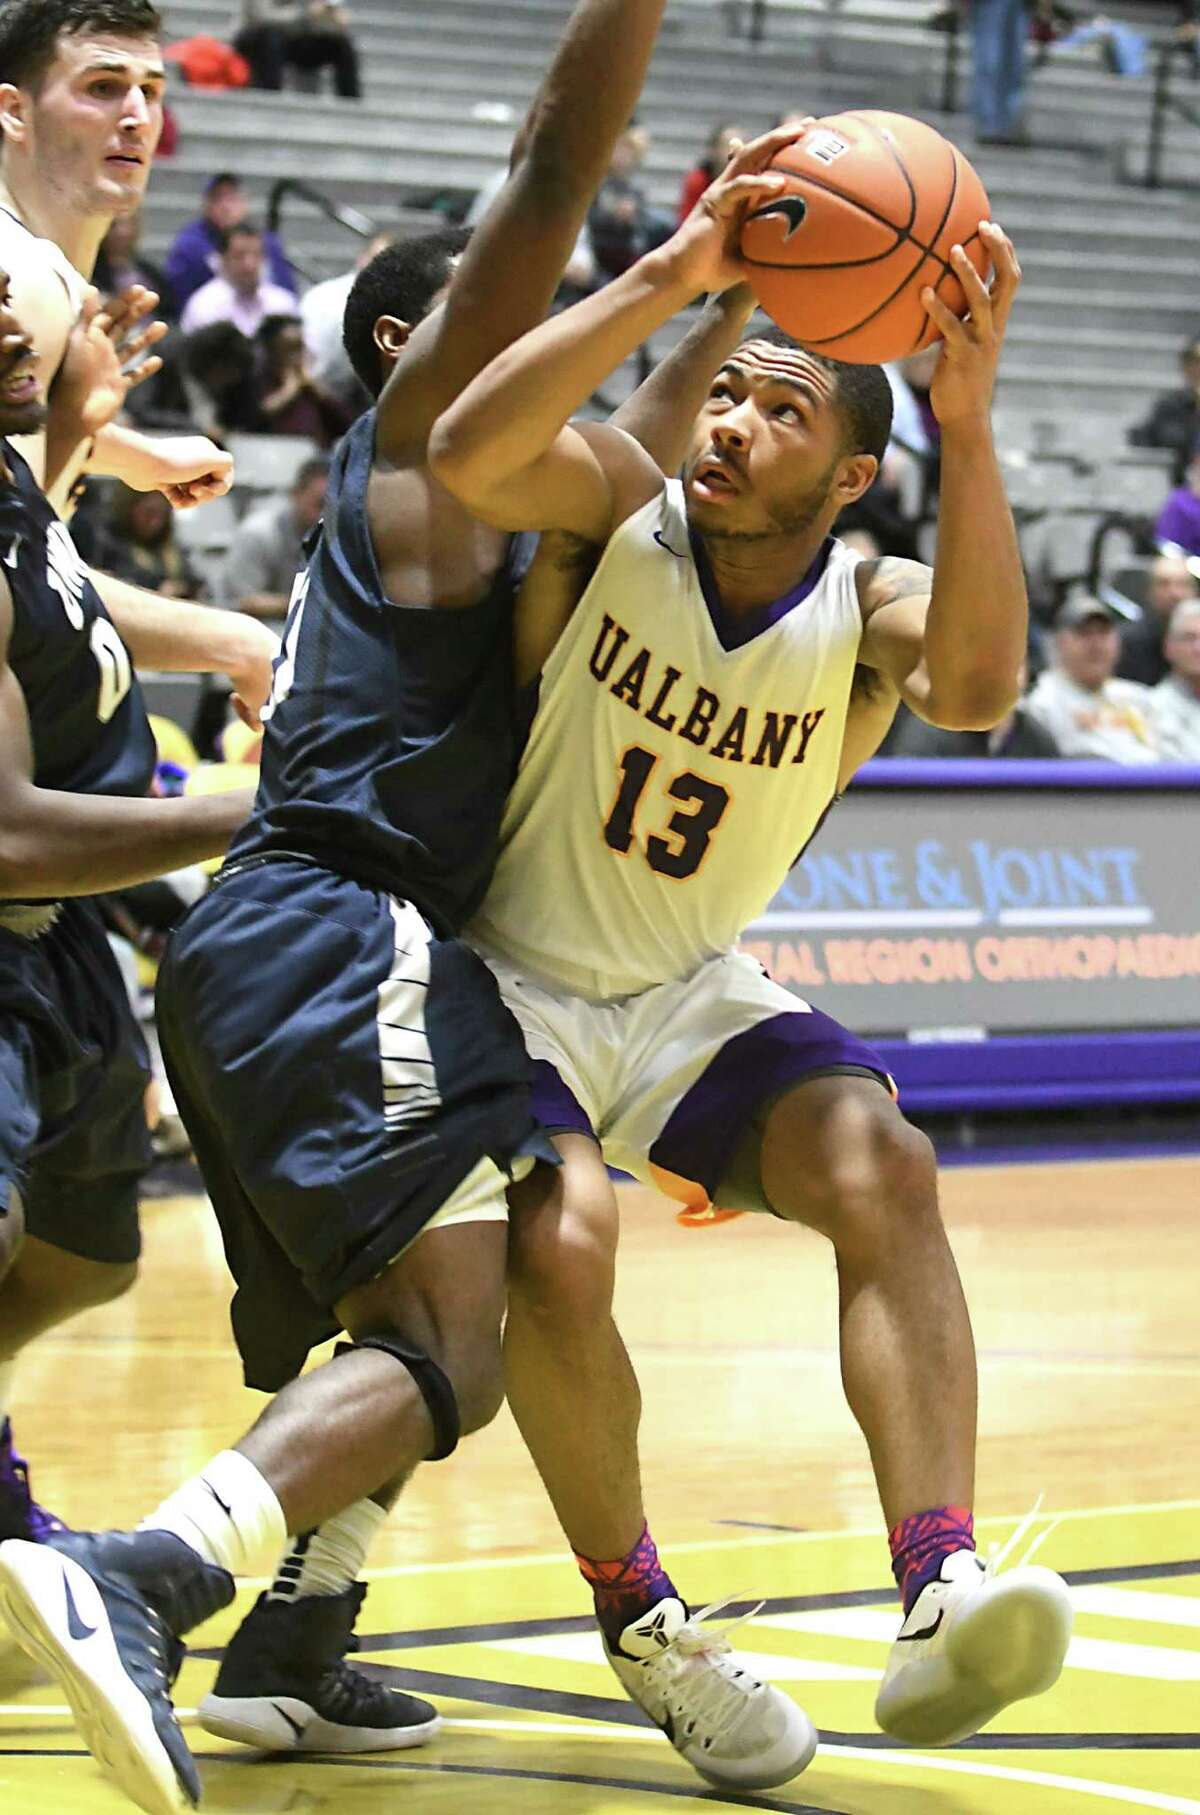 University at Albany's David Nichols is defended by New Hampshire's Jordan Reed during a basketball game at SEFCU Arena on Wednesday, Jan. 11, 2017 in Albany, N.Y. (Lori Van Buren / Times Union)